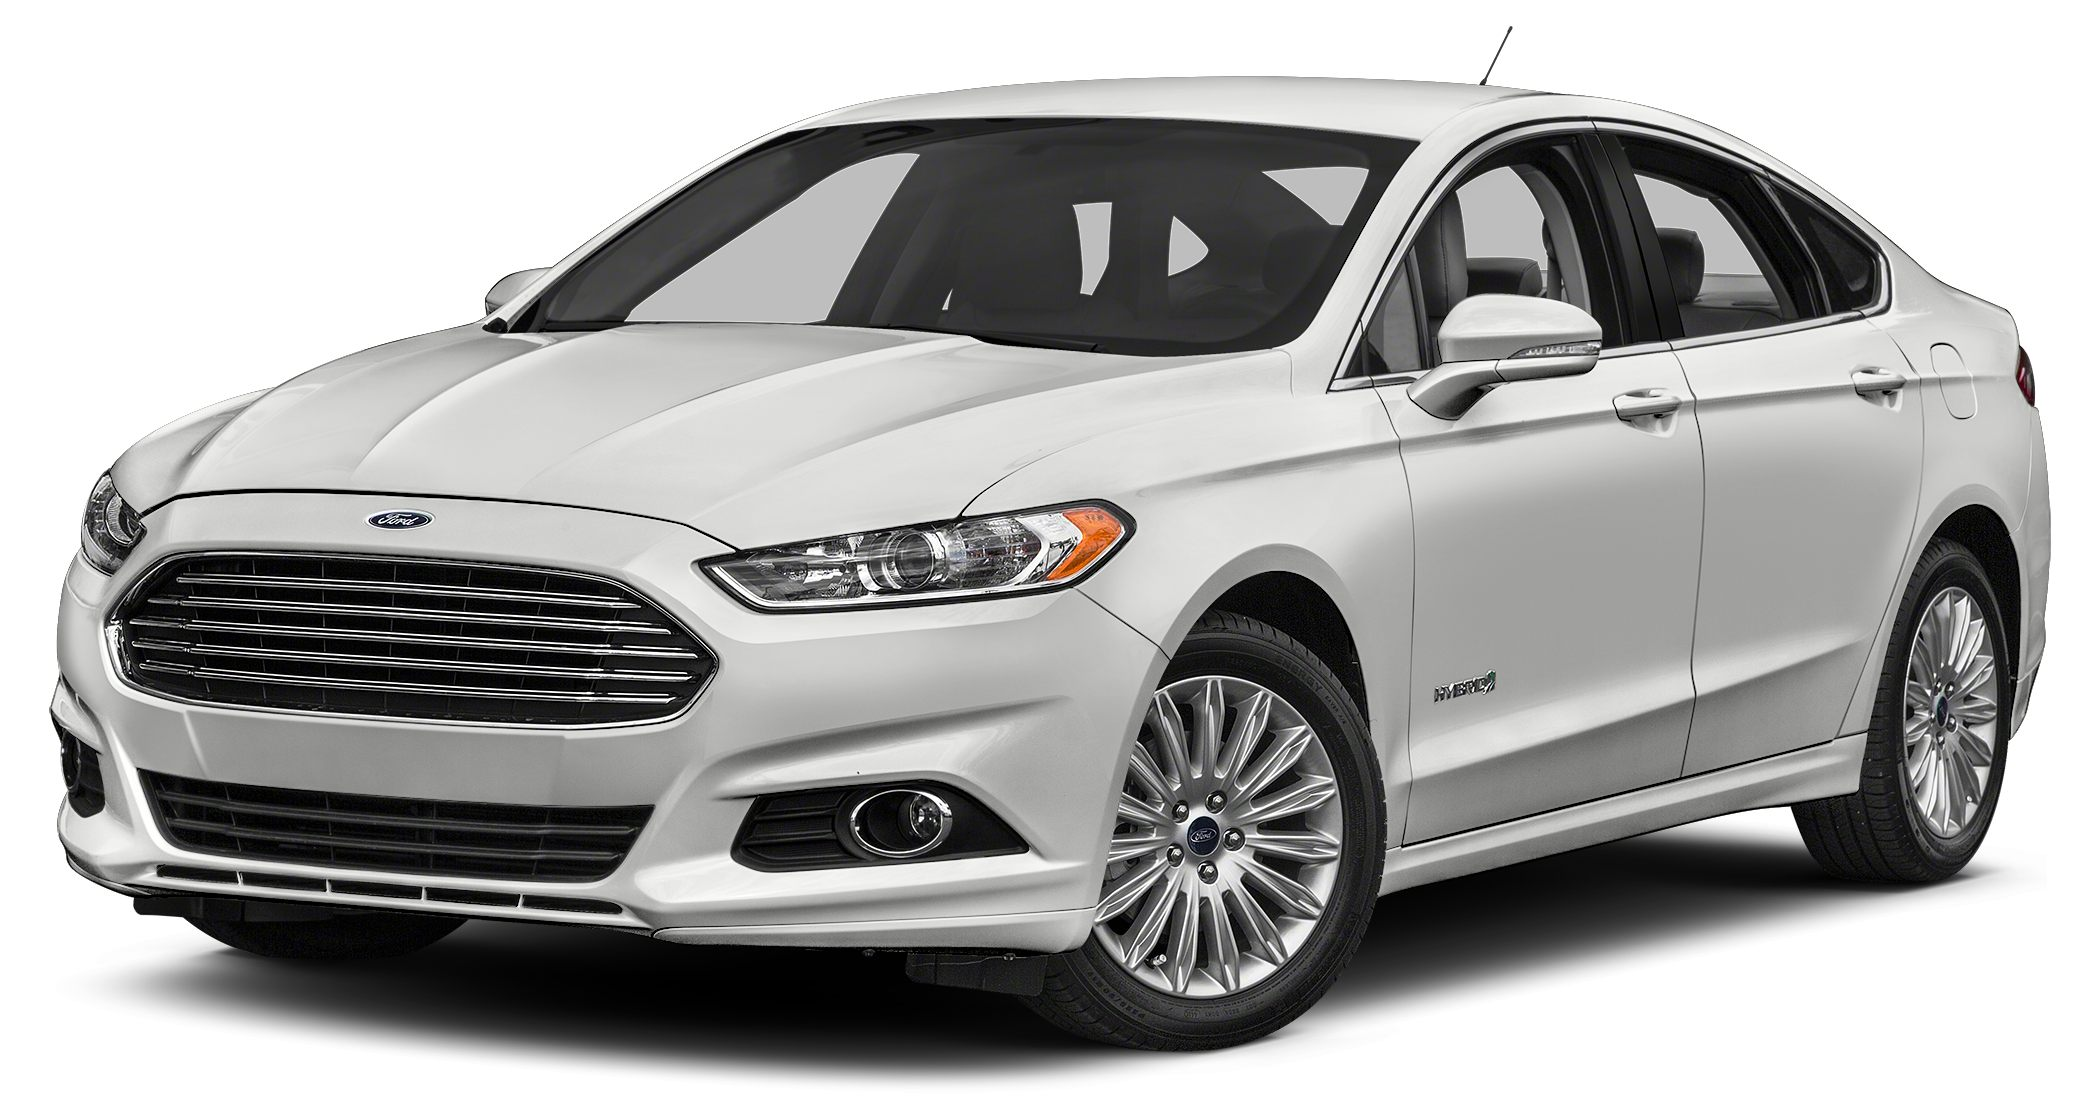 2014 Ford Fusion Hybrid Titanium Delivers 41 Highway MPG and 44 City MPG Carfax One-Owner Vehicle